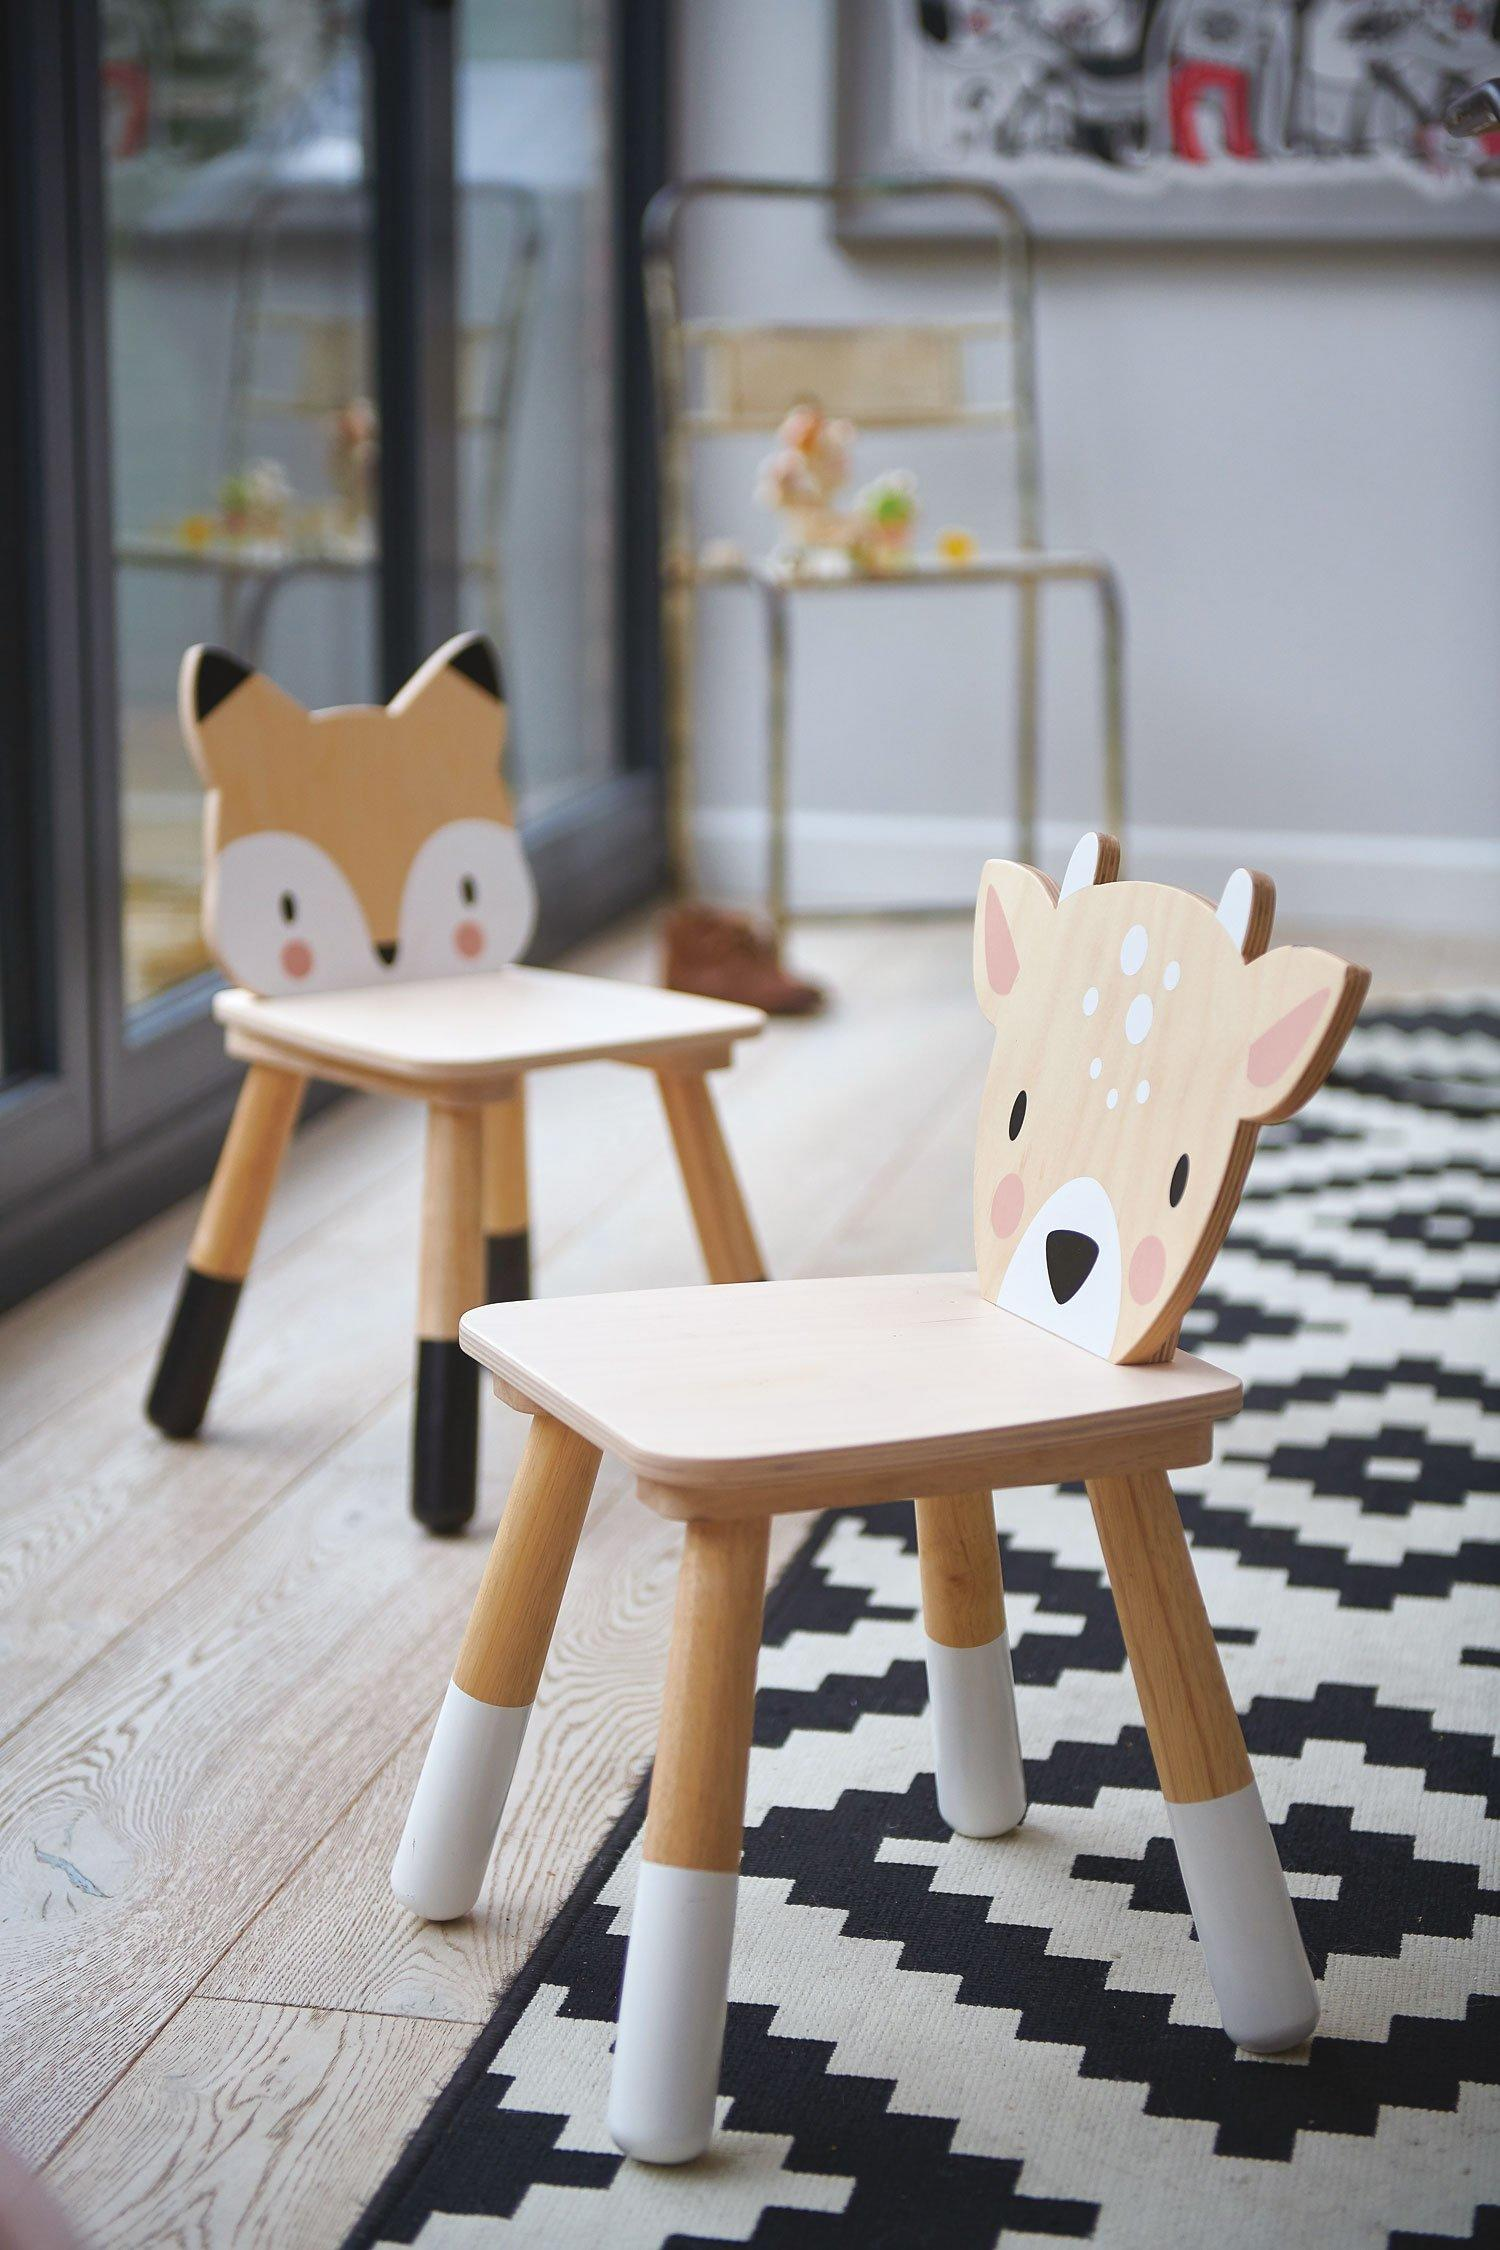 New Wooden Forest Fox Themed Children's Chair